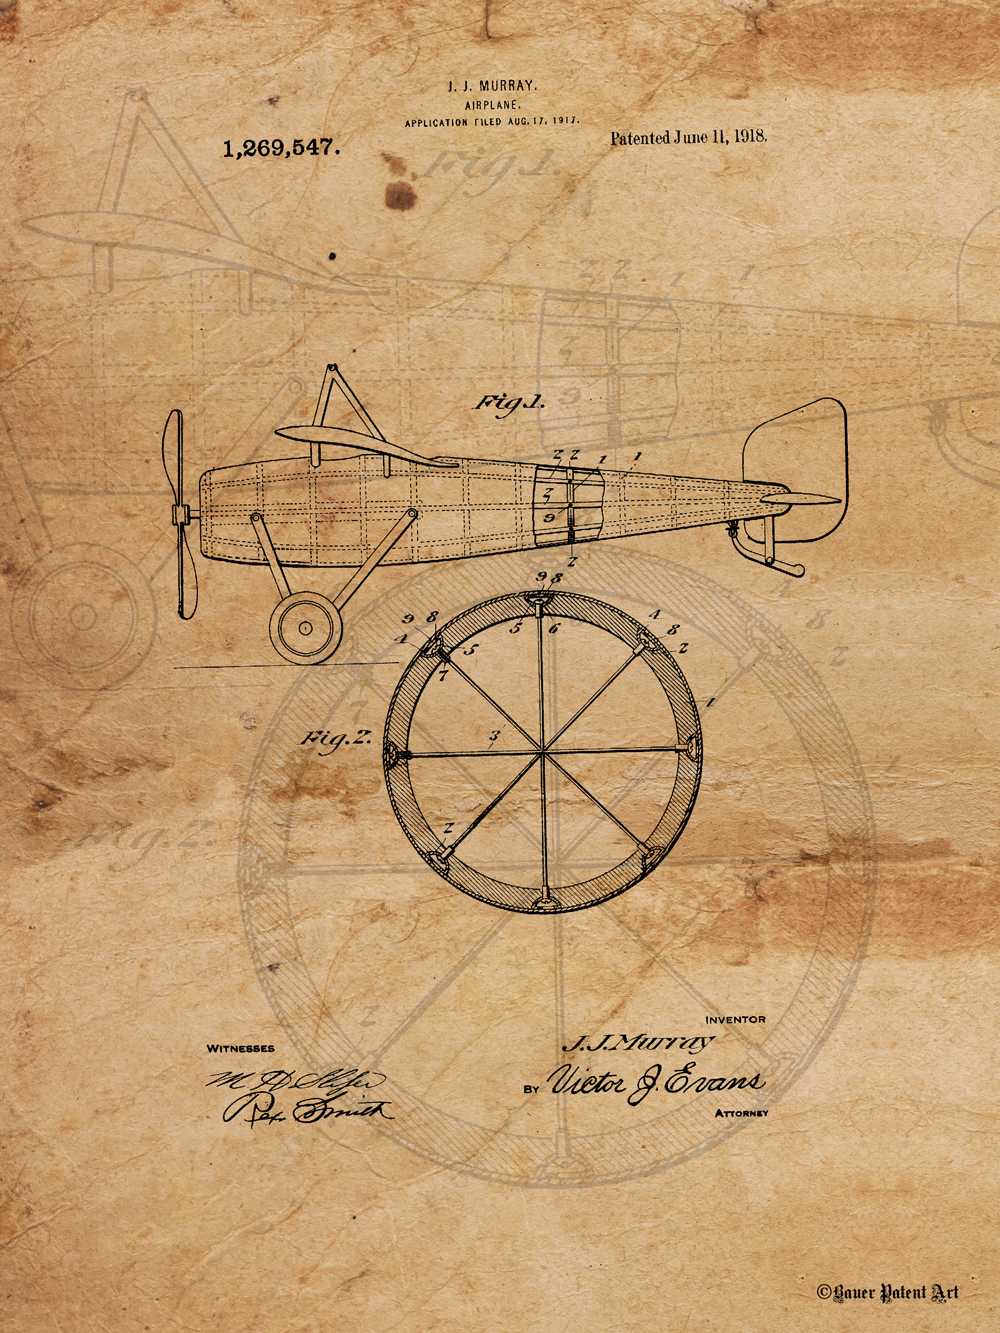 1000x1333 Patent Art Drawing Of Airplane